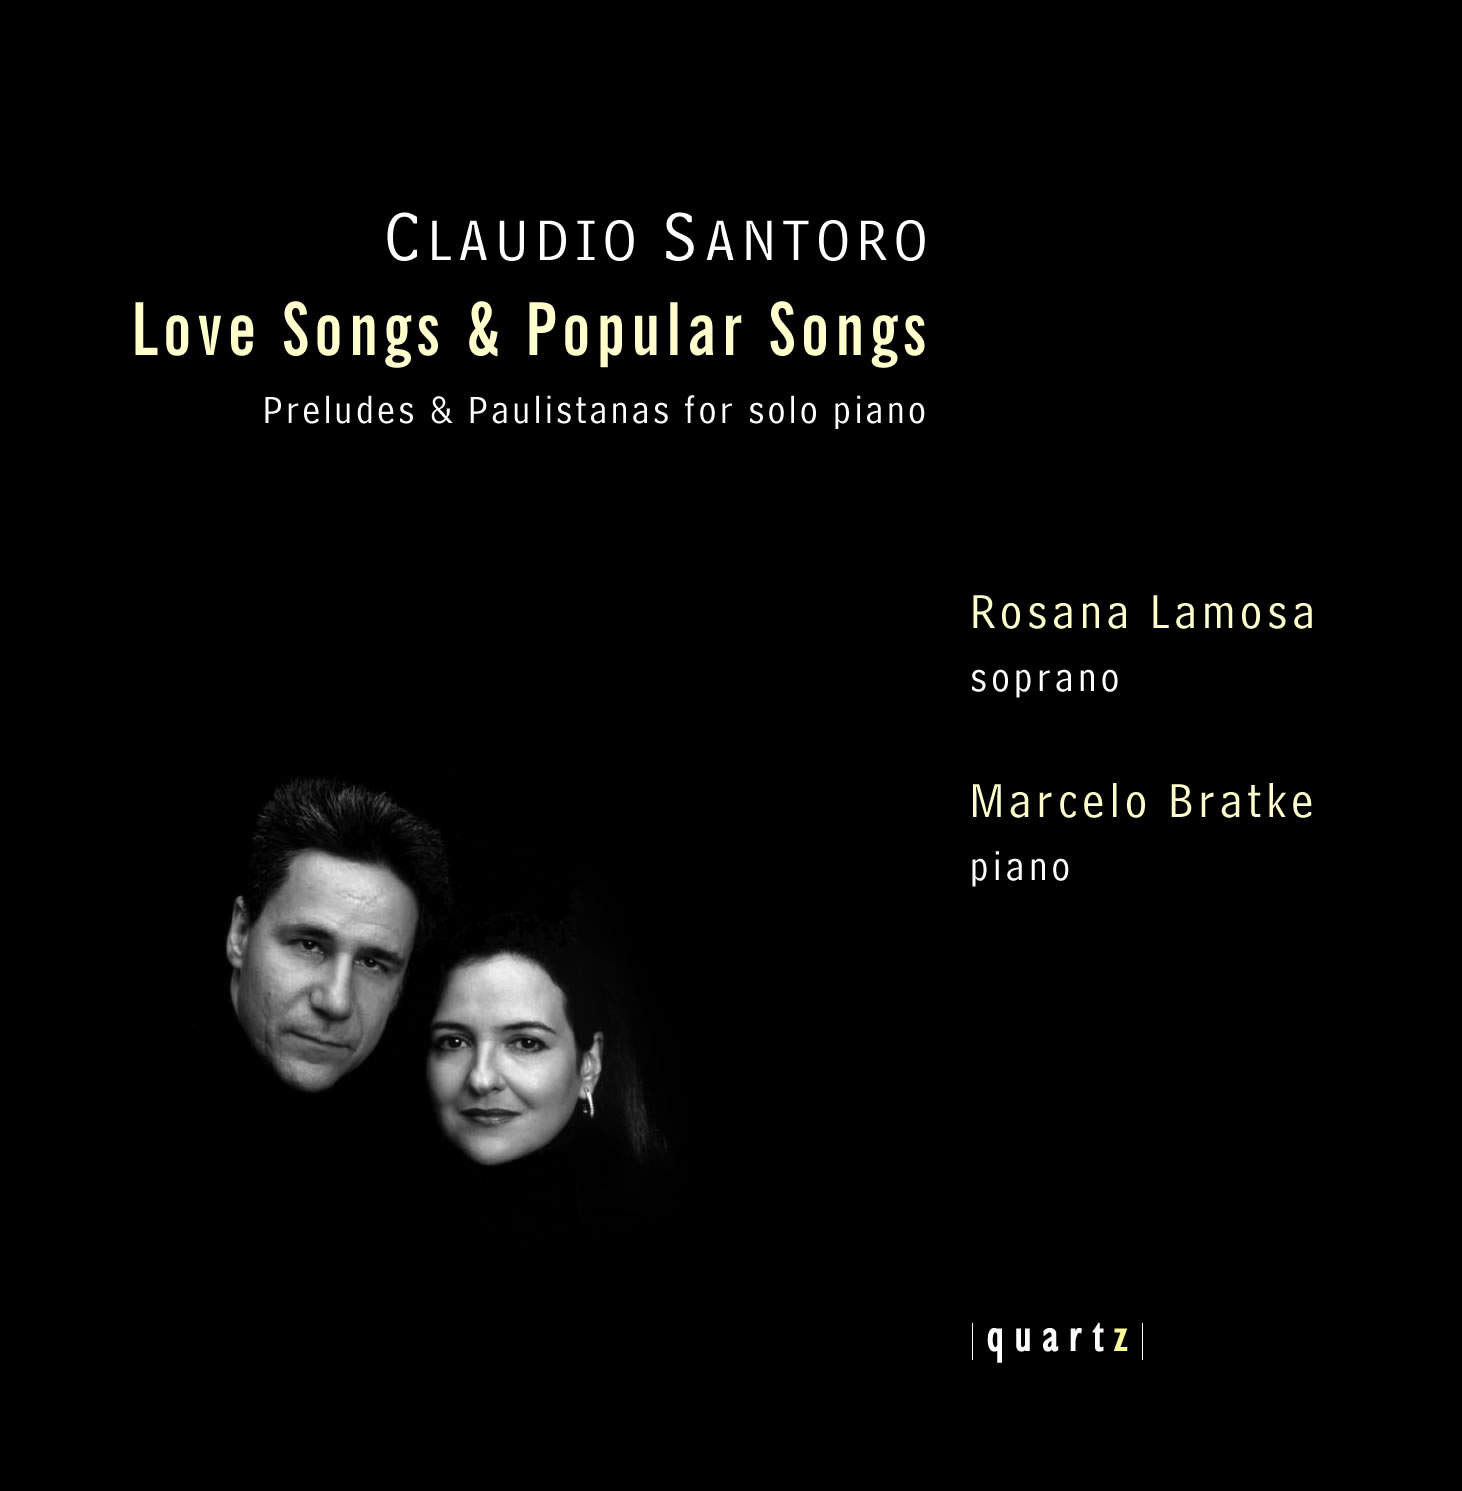 Marcelo Bratke (piano) and Rosana Lamosa (soprano)